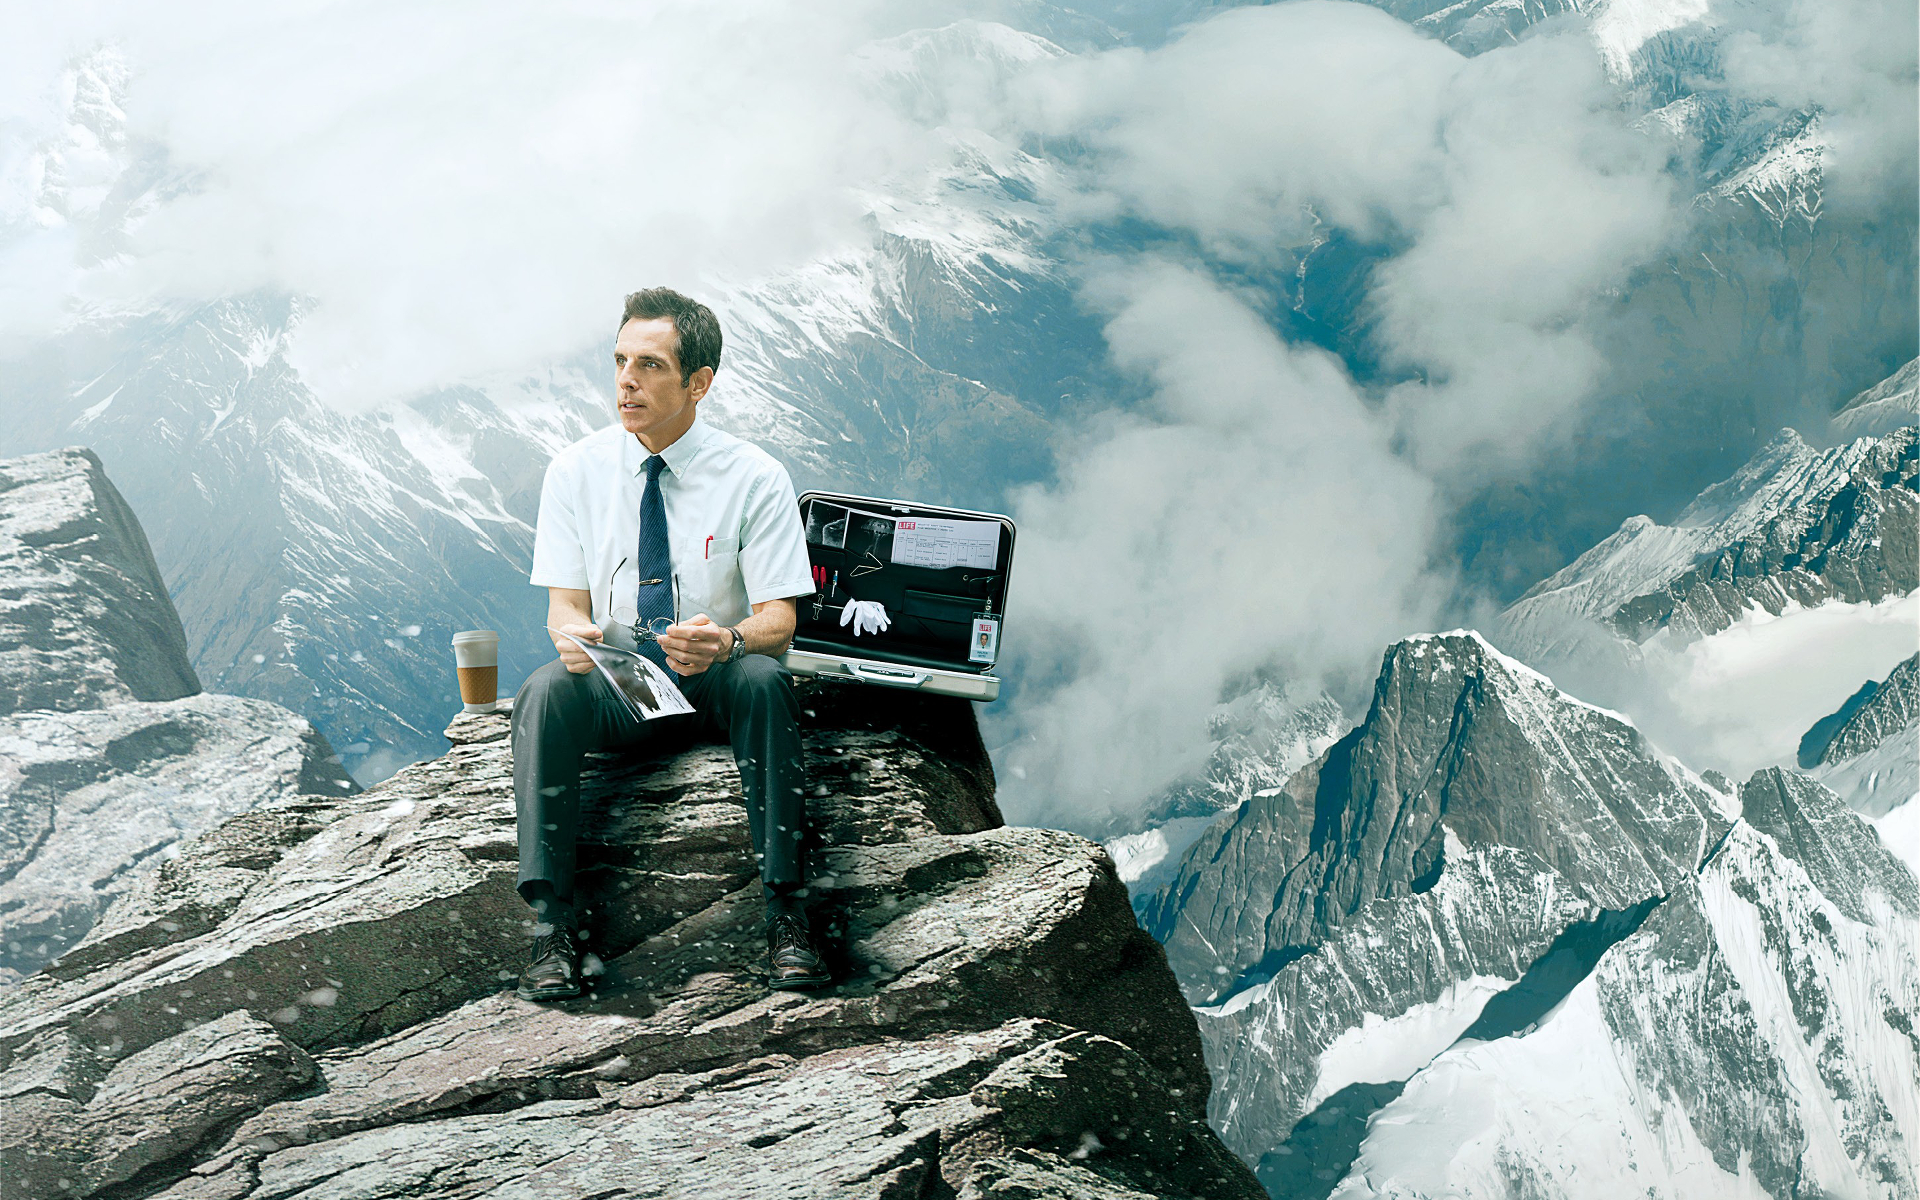 secret life of walter mitty travel films